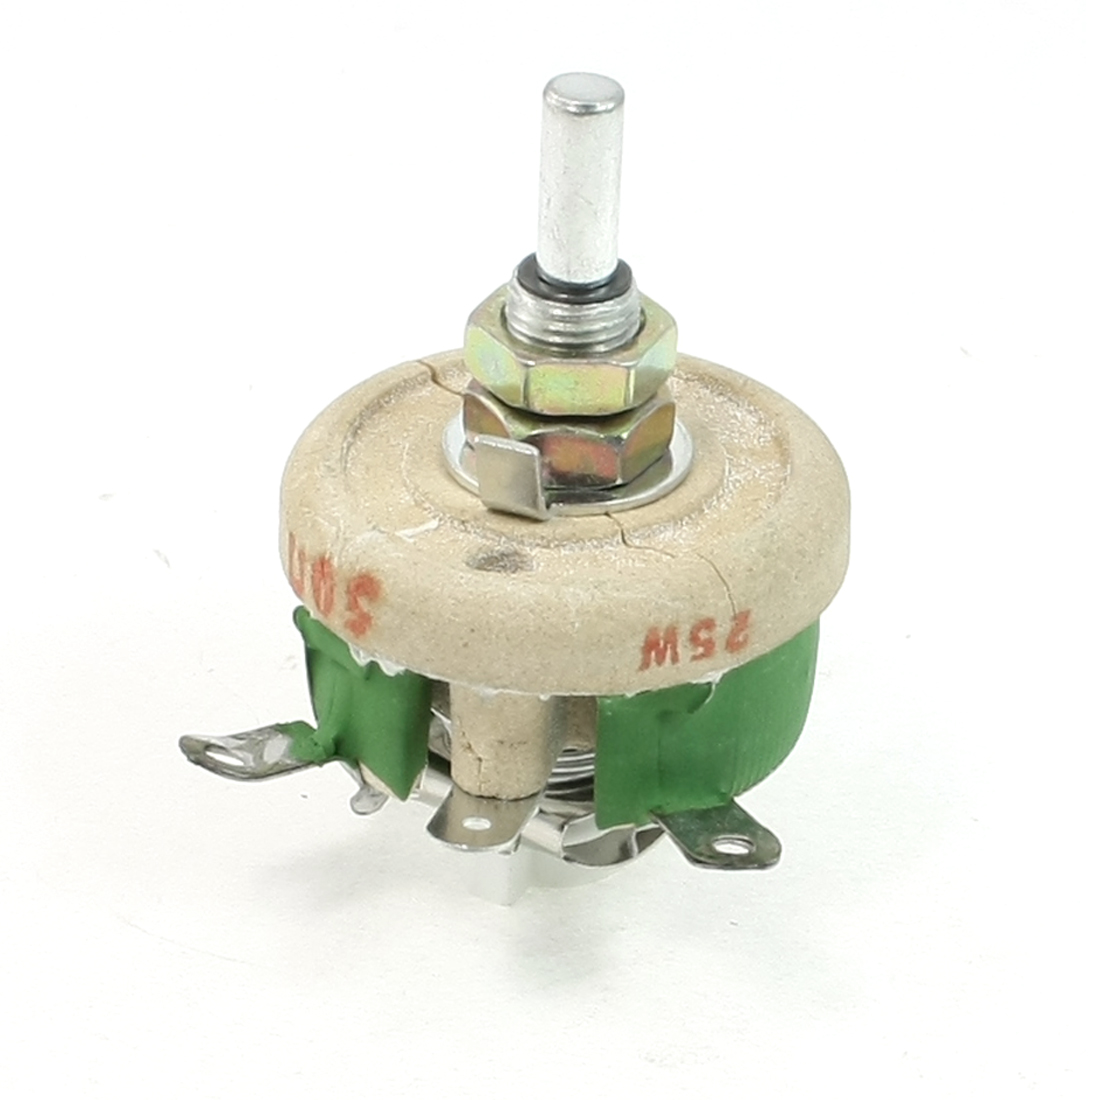 Motor Control 25W 50 Ohm C Shaped Ceramic Variable Resistor